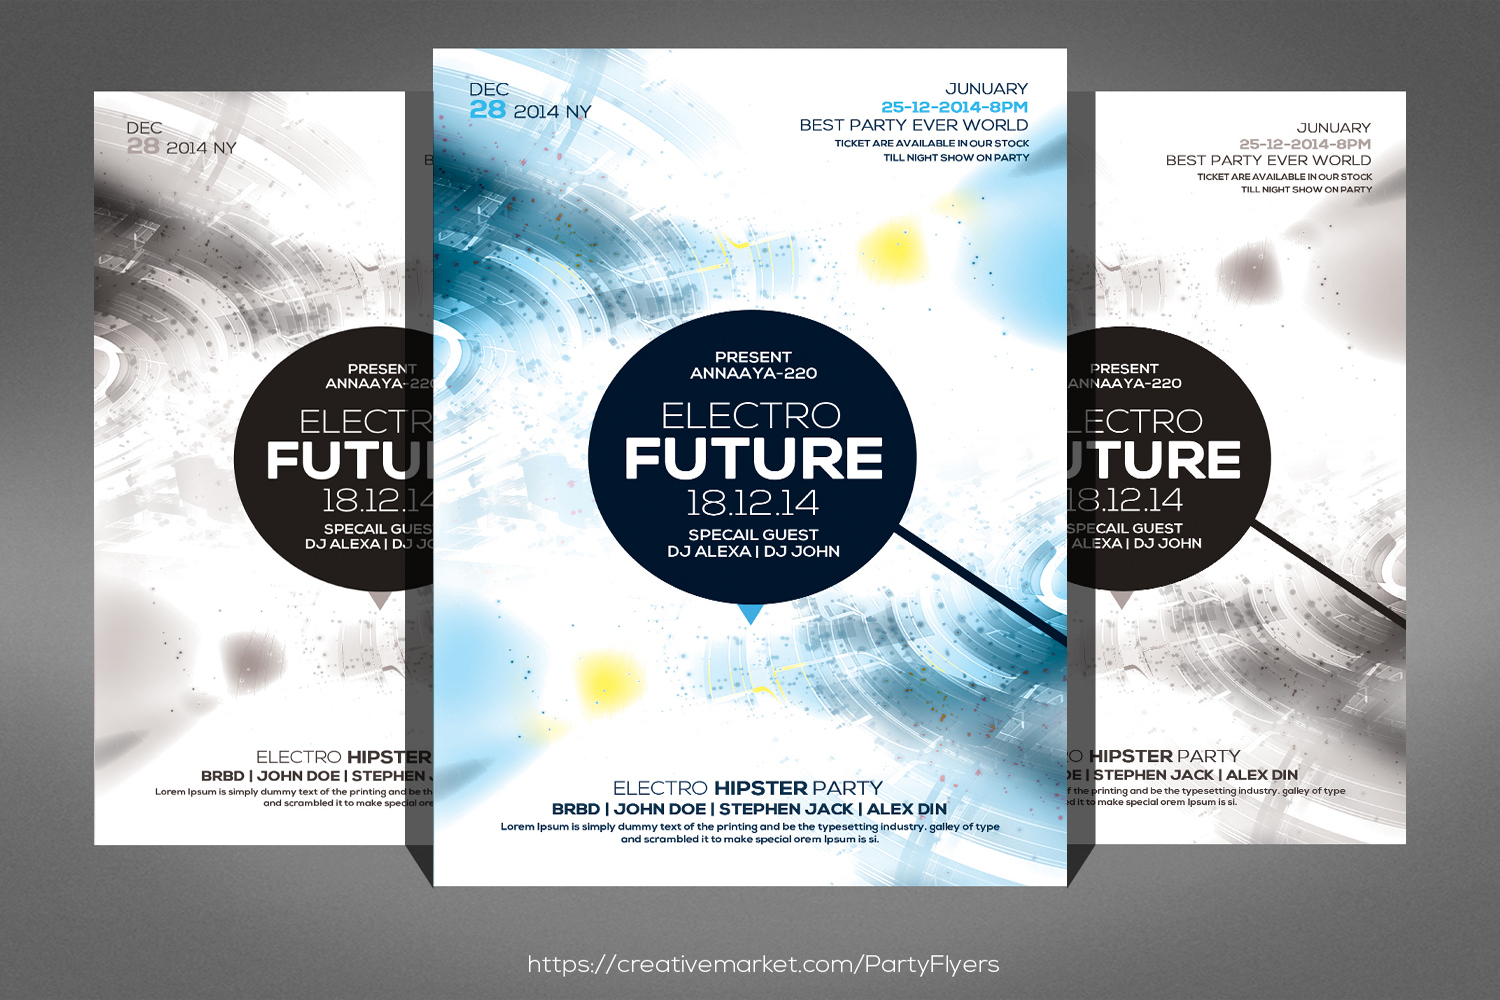 Electro Future Special Guest Flyer example image 1